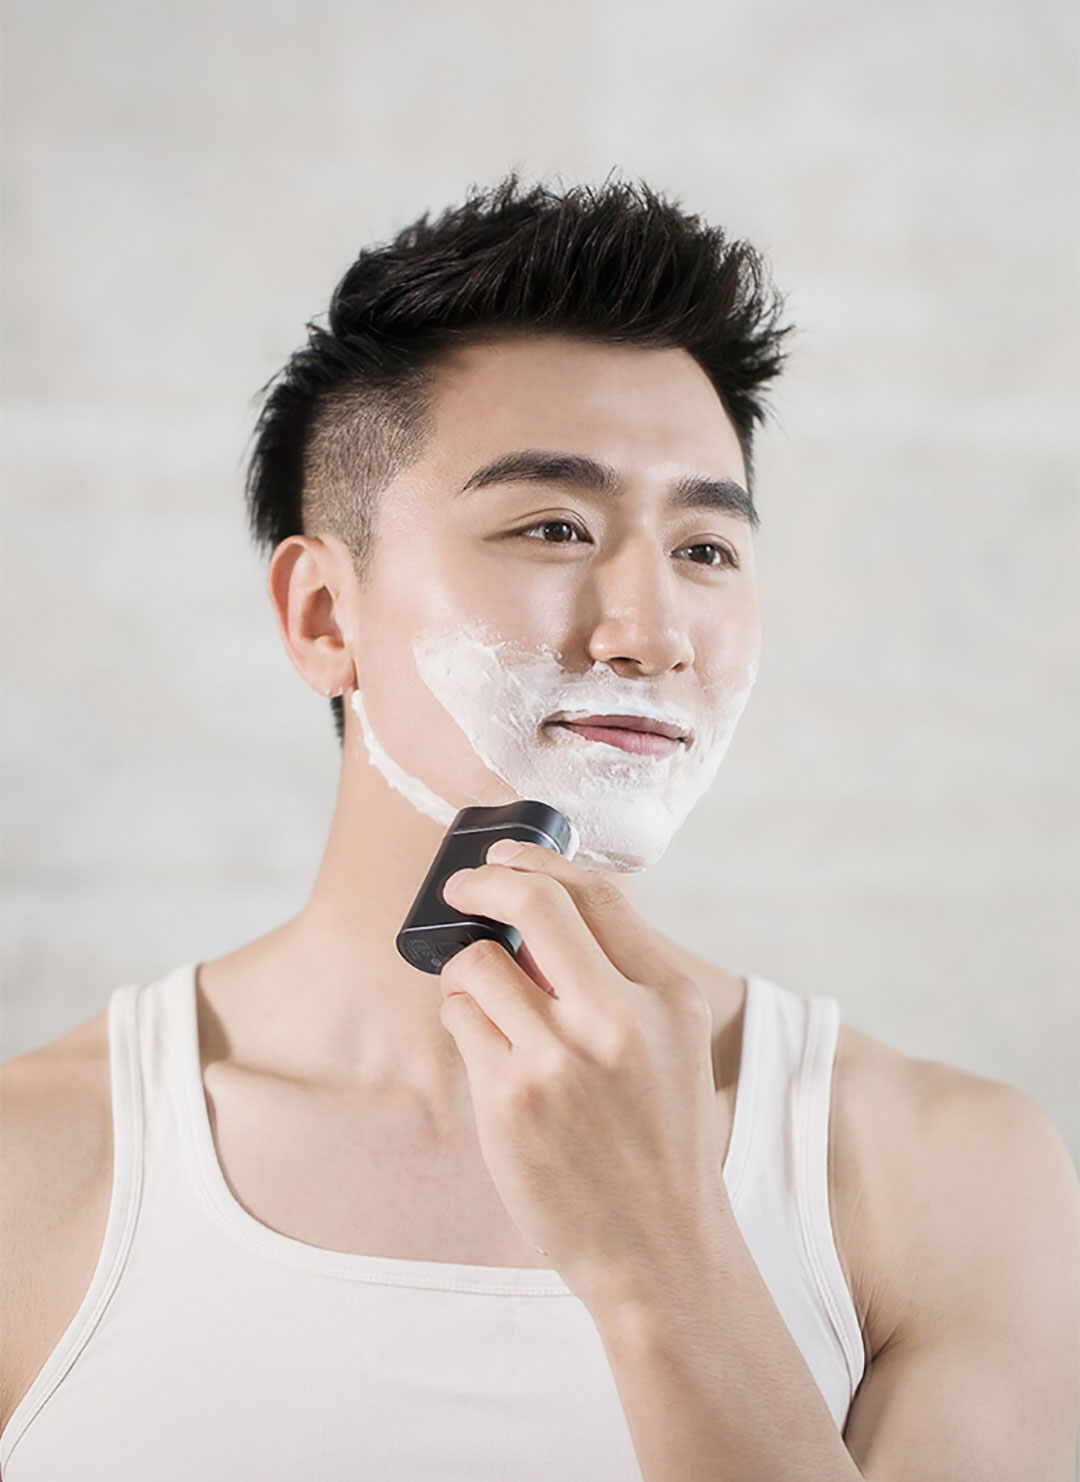 Xiaomi ZhiBai Mini Washable Shaver